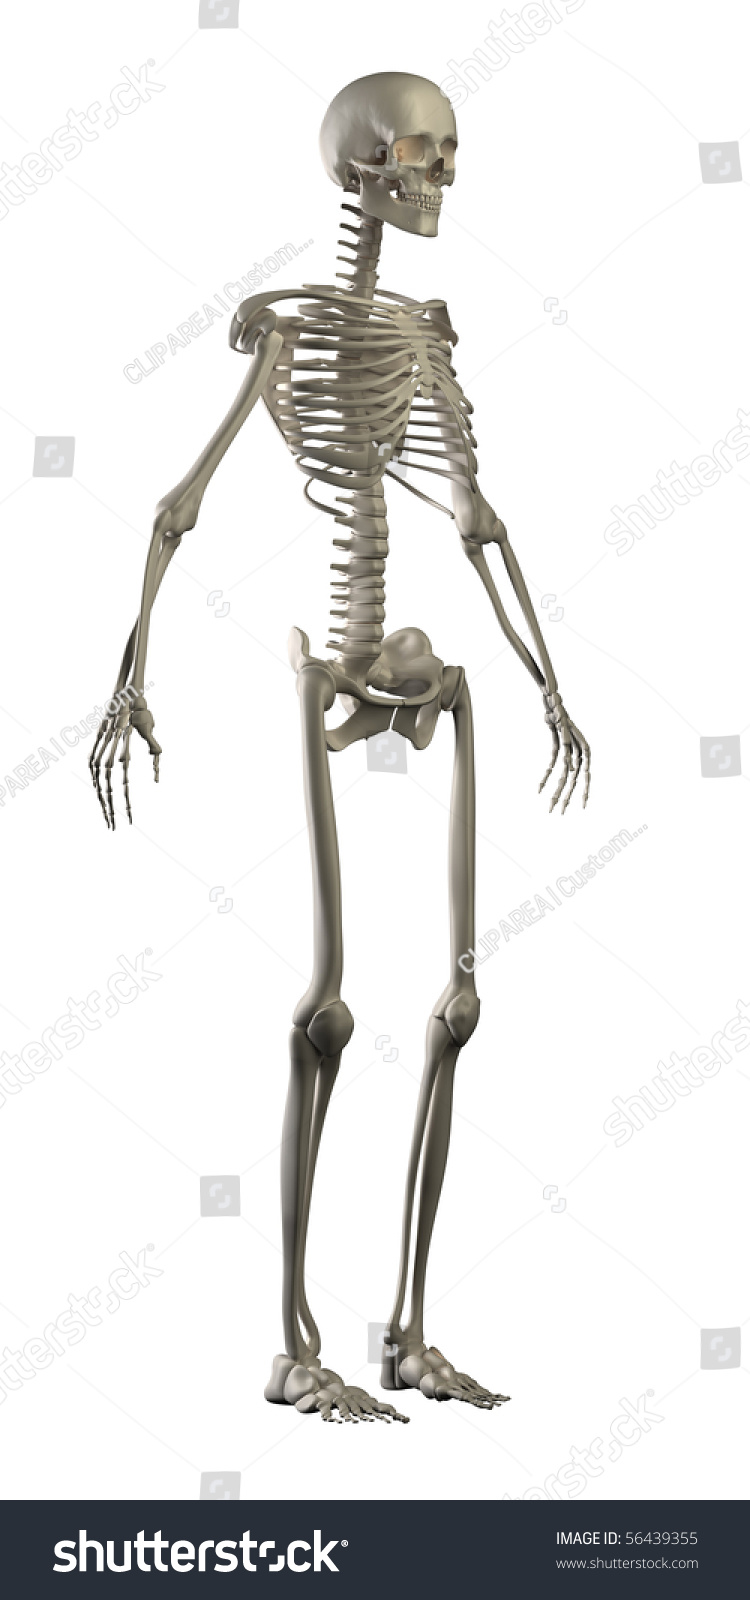 Royalty Free Stock Illustration Of Human Skeleton Isolated Side View